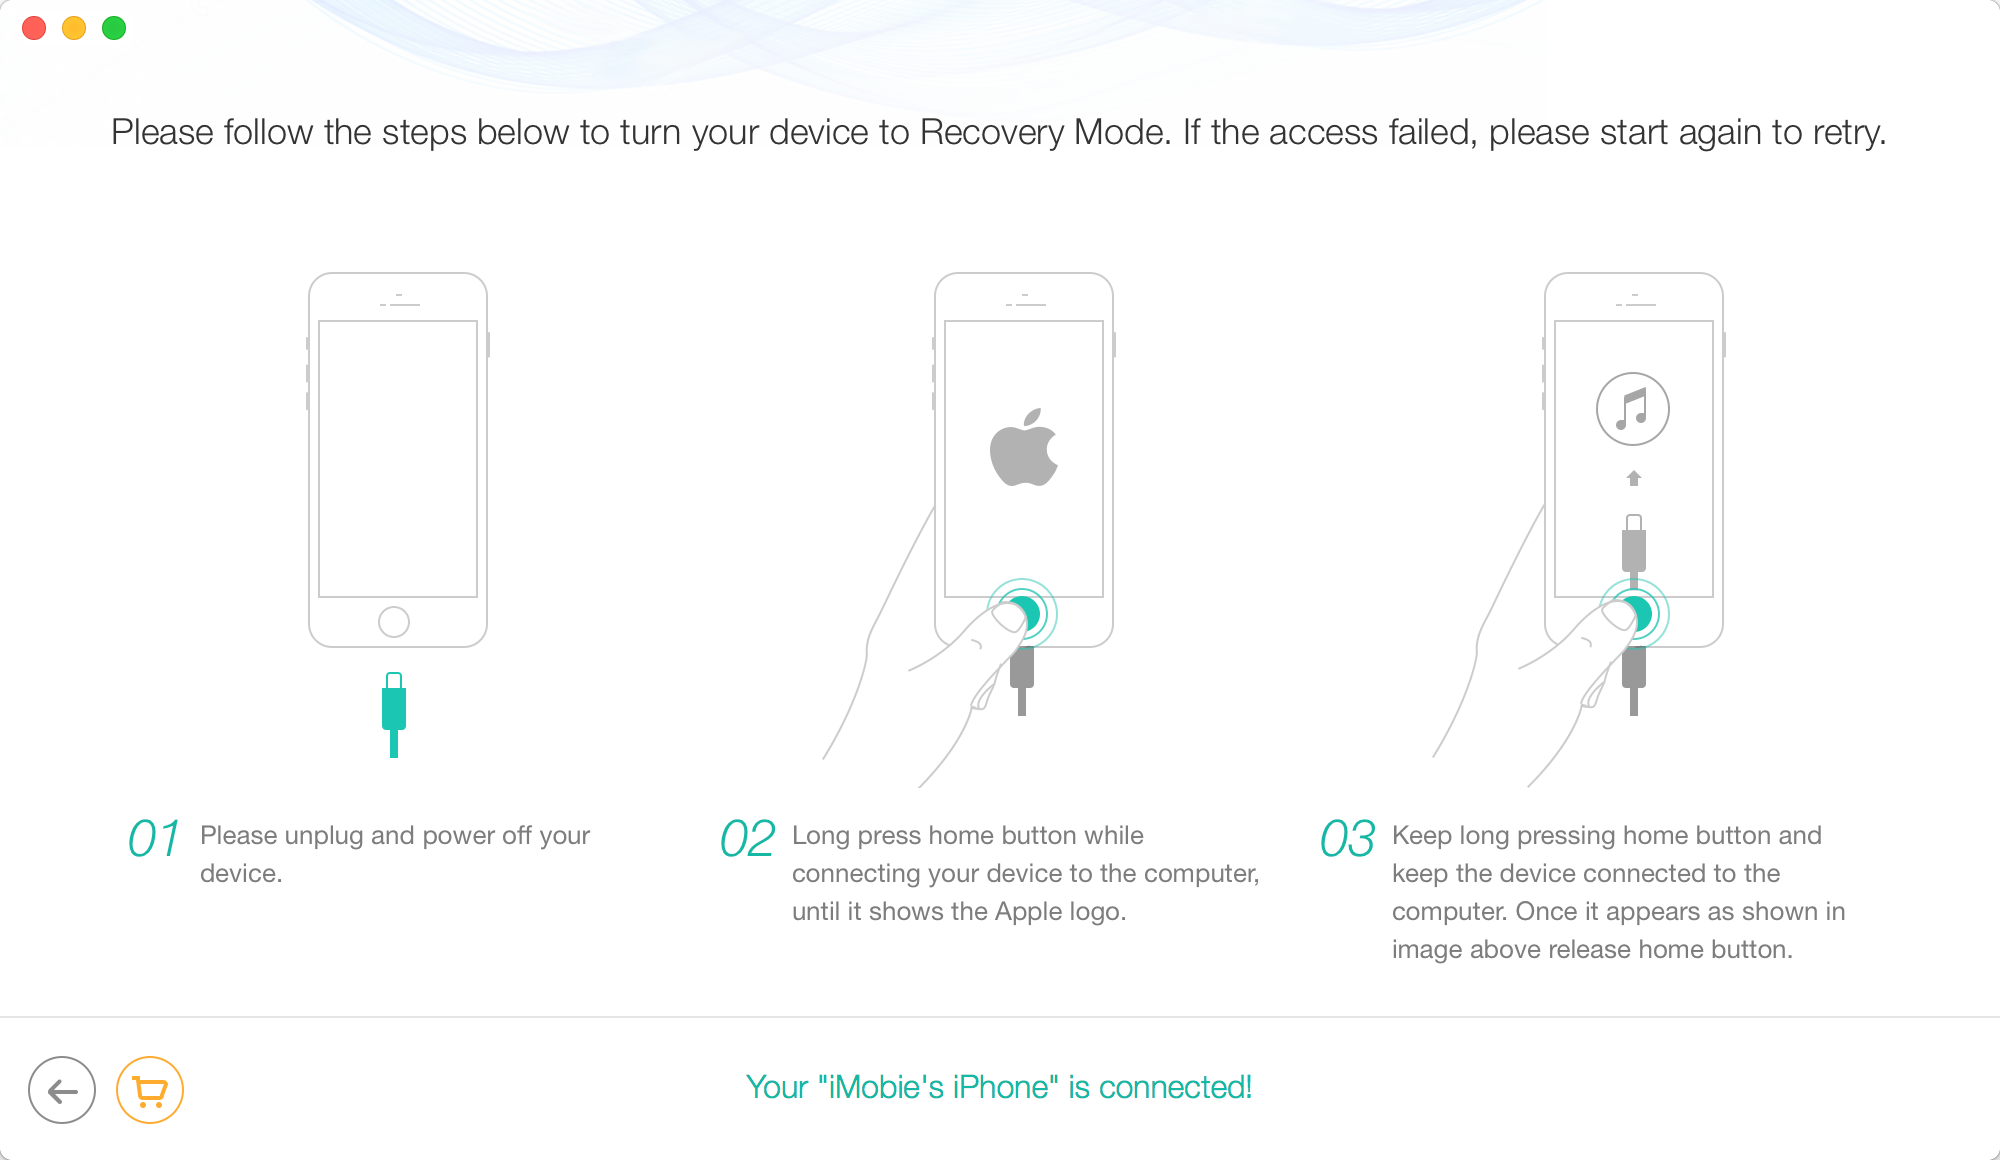 Fix iOS System Problems with PhoneRescue for iOS - Step 3